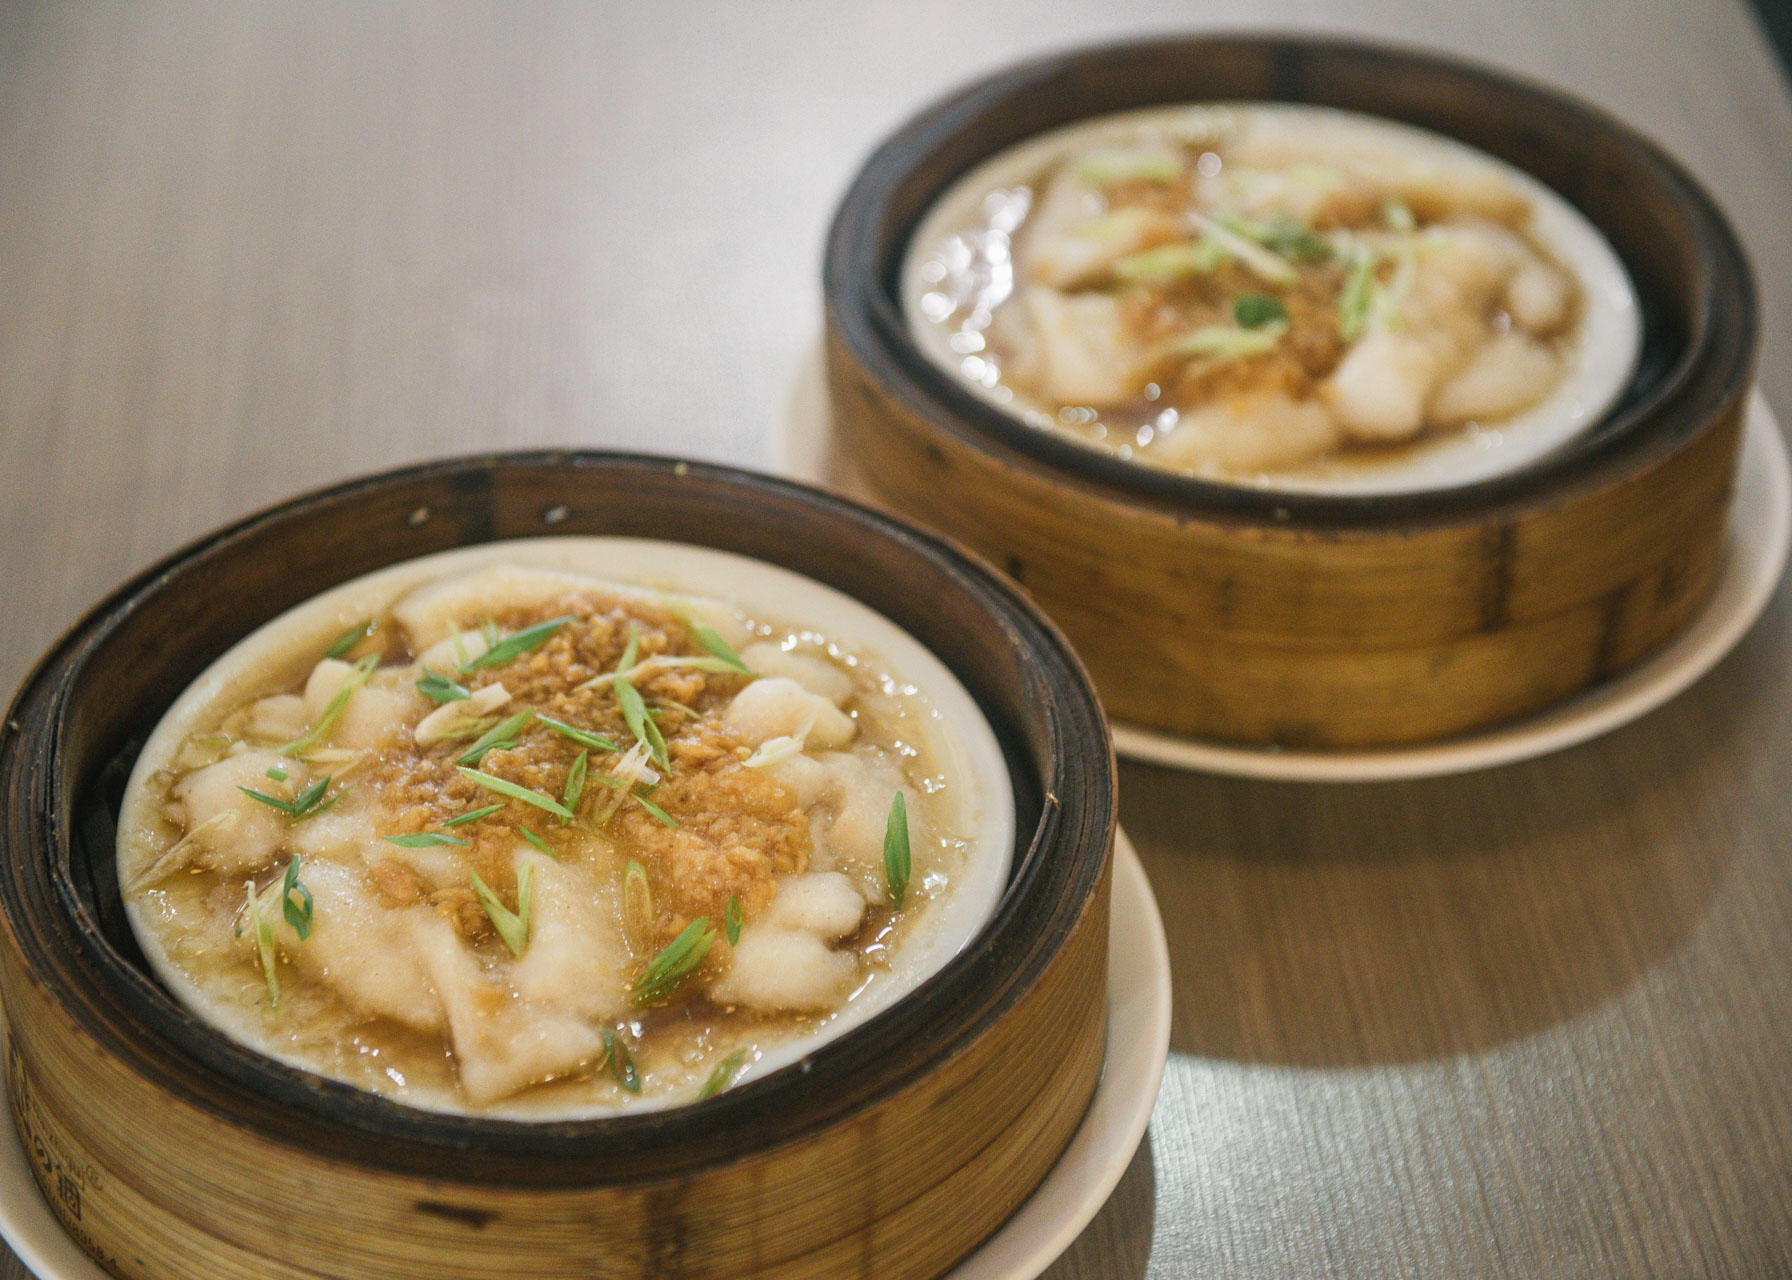 Steamed Fish Fillet with Garlic Sauce or Taosi Sauce